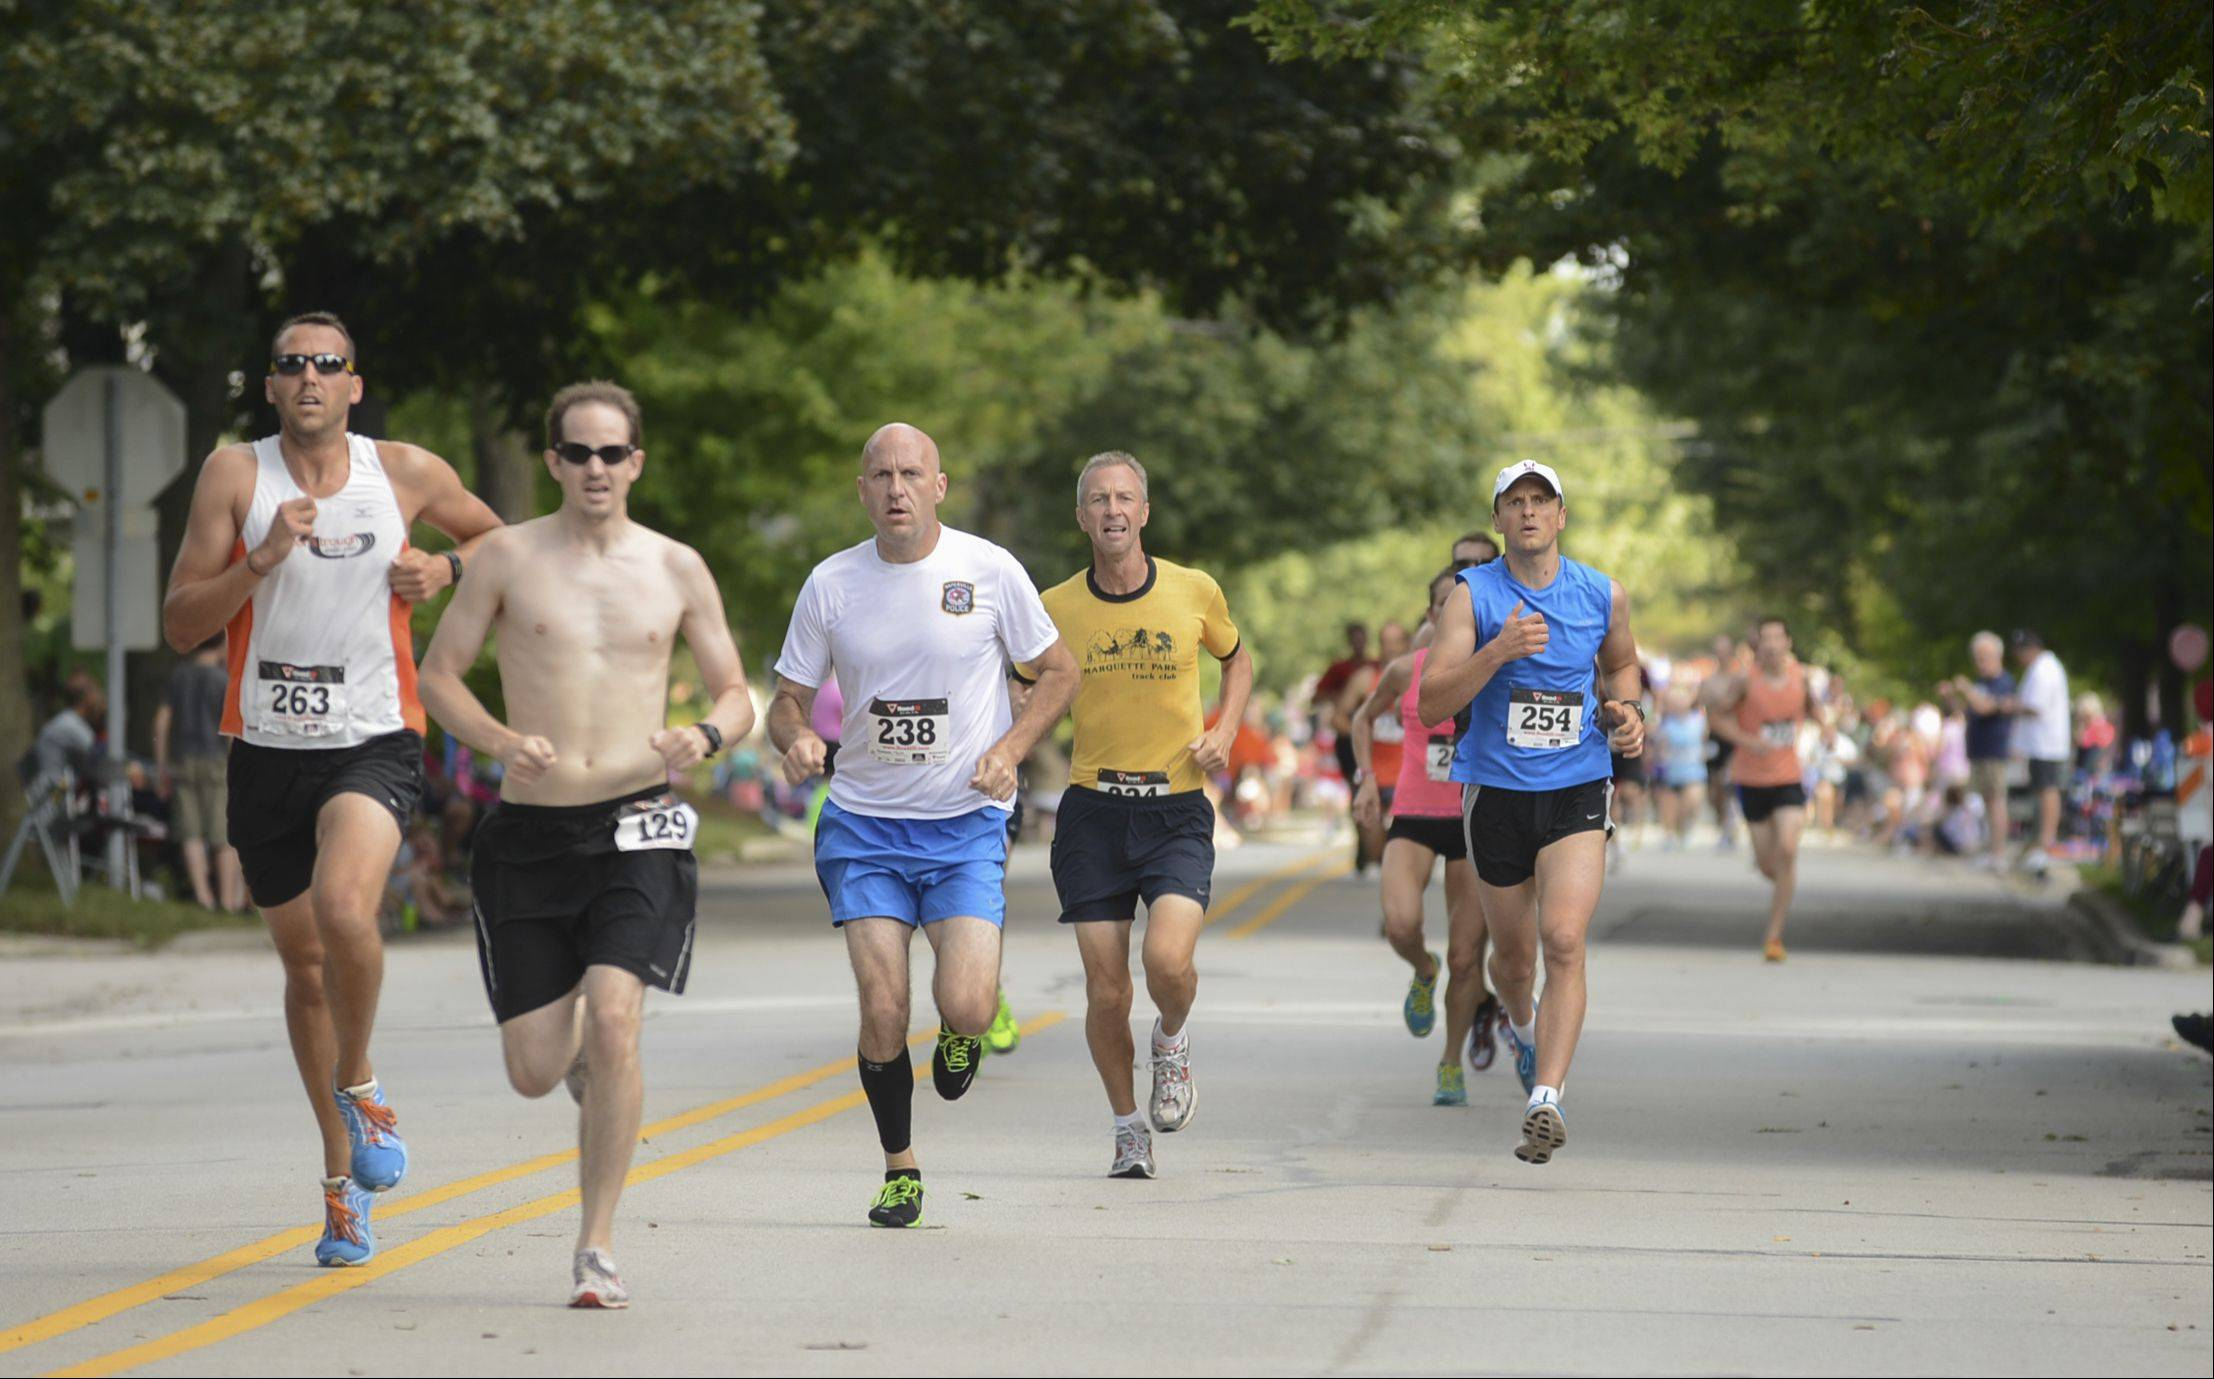 Runners participate in the Fling Mile on Monday morning during the Last Fling festival in Naperville.